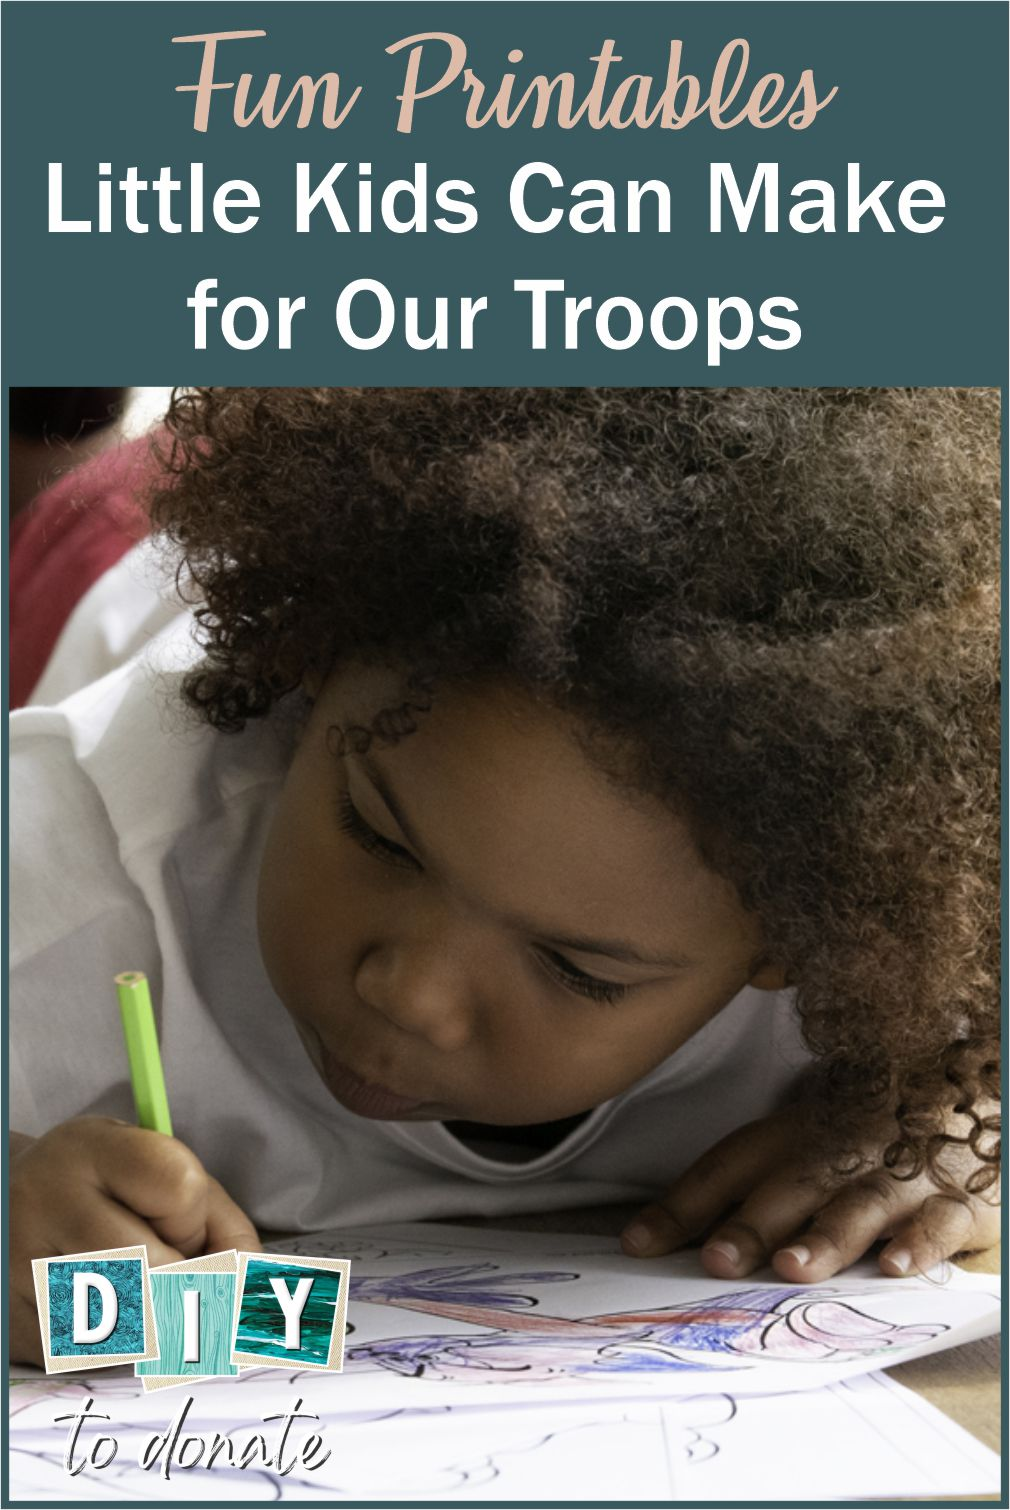 6 Fun Things Little Kids Can Make for our Troops It's never to early to introduce your children to community service. Even preschoolers can learn to give back by drawing or coloring pictures to make for our troops. #militaryheroes #drawing #coloring #writing #diytodonate